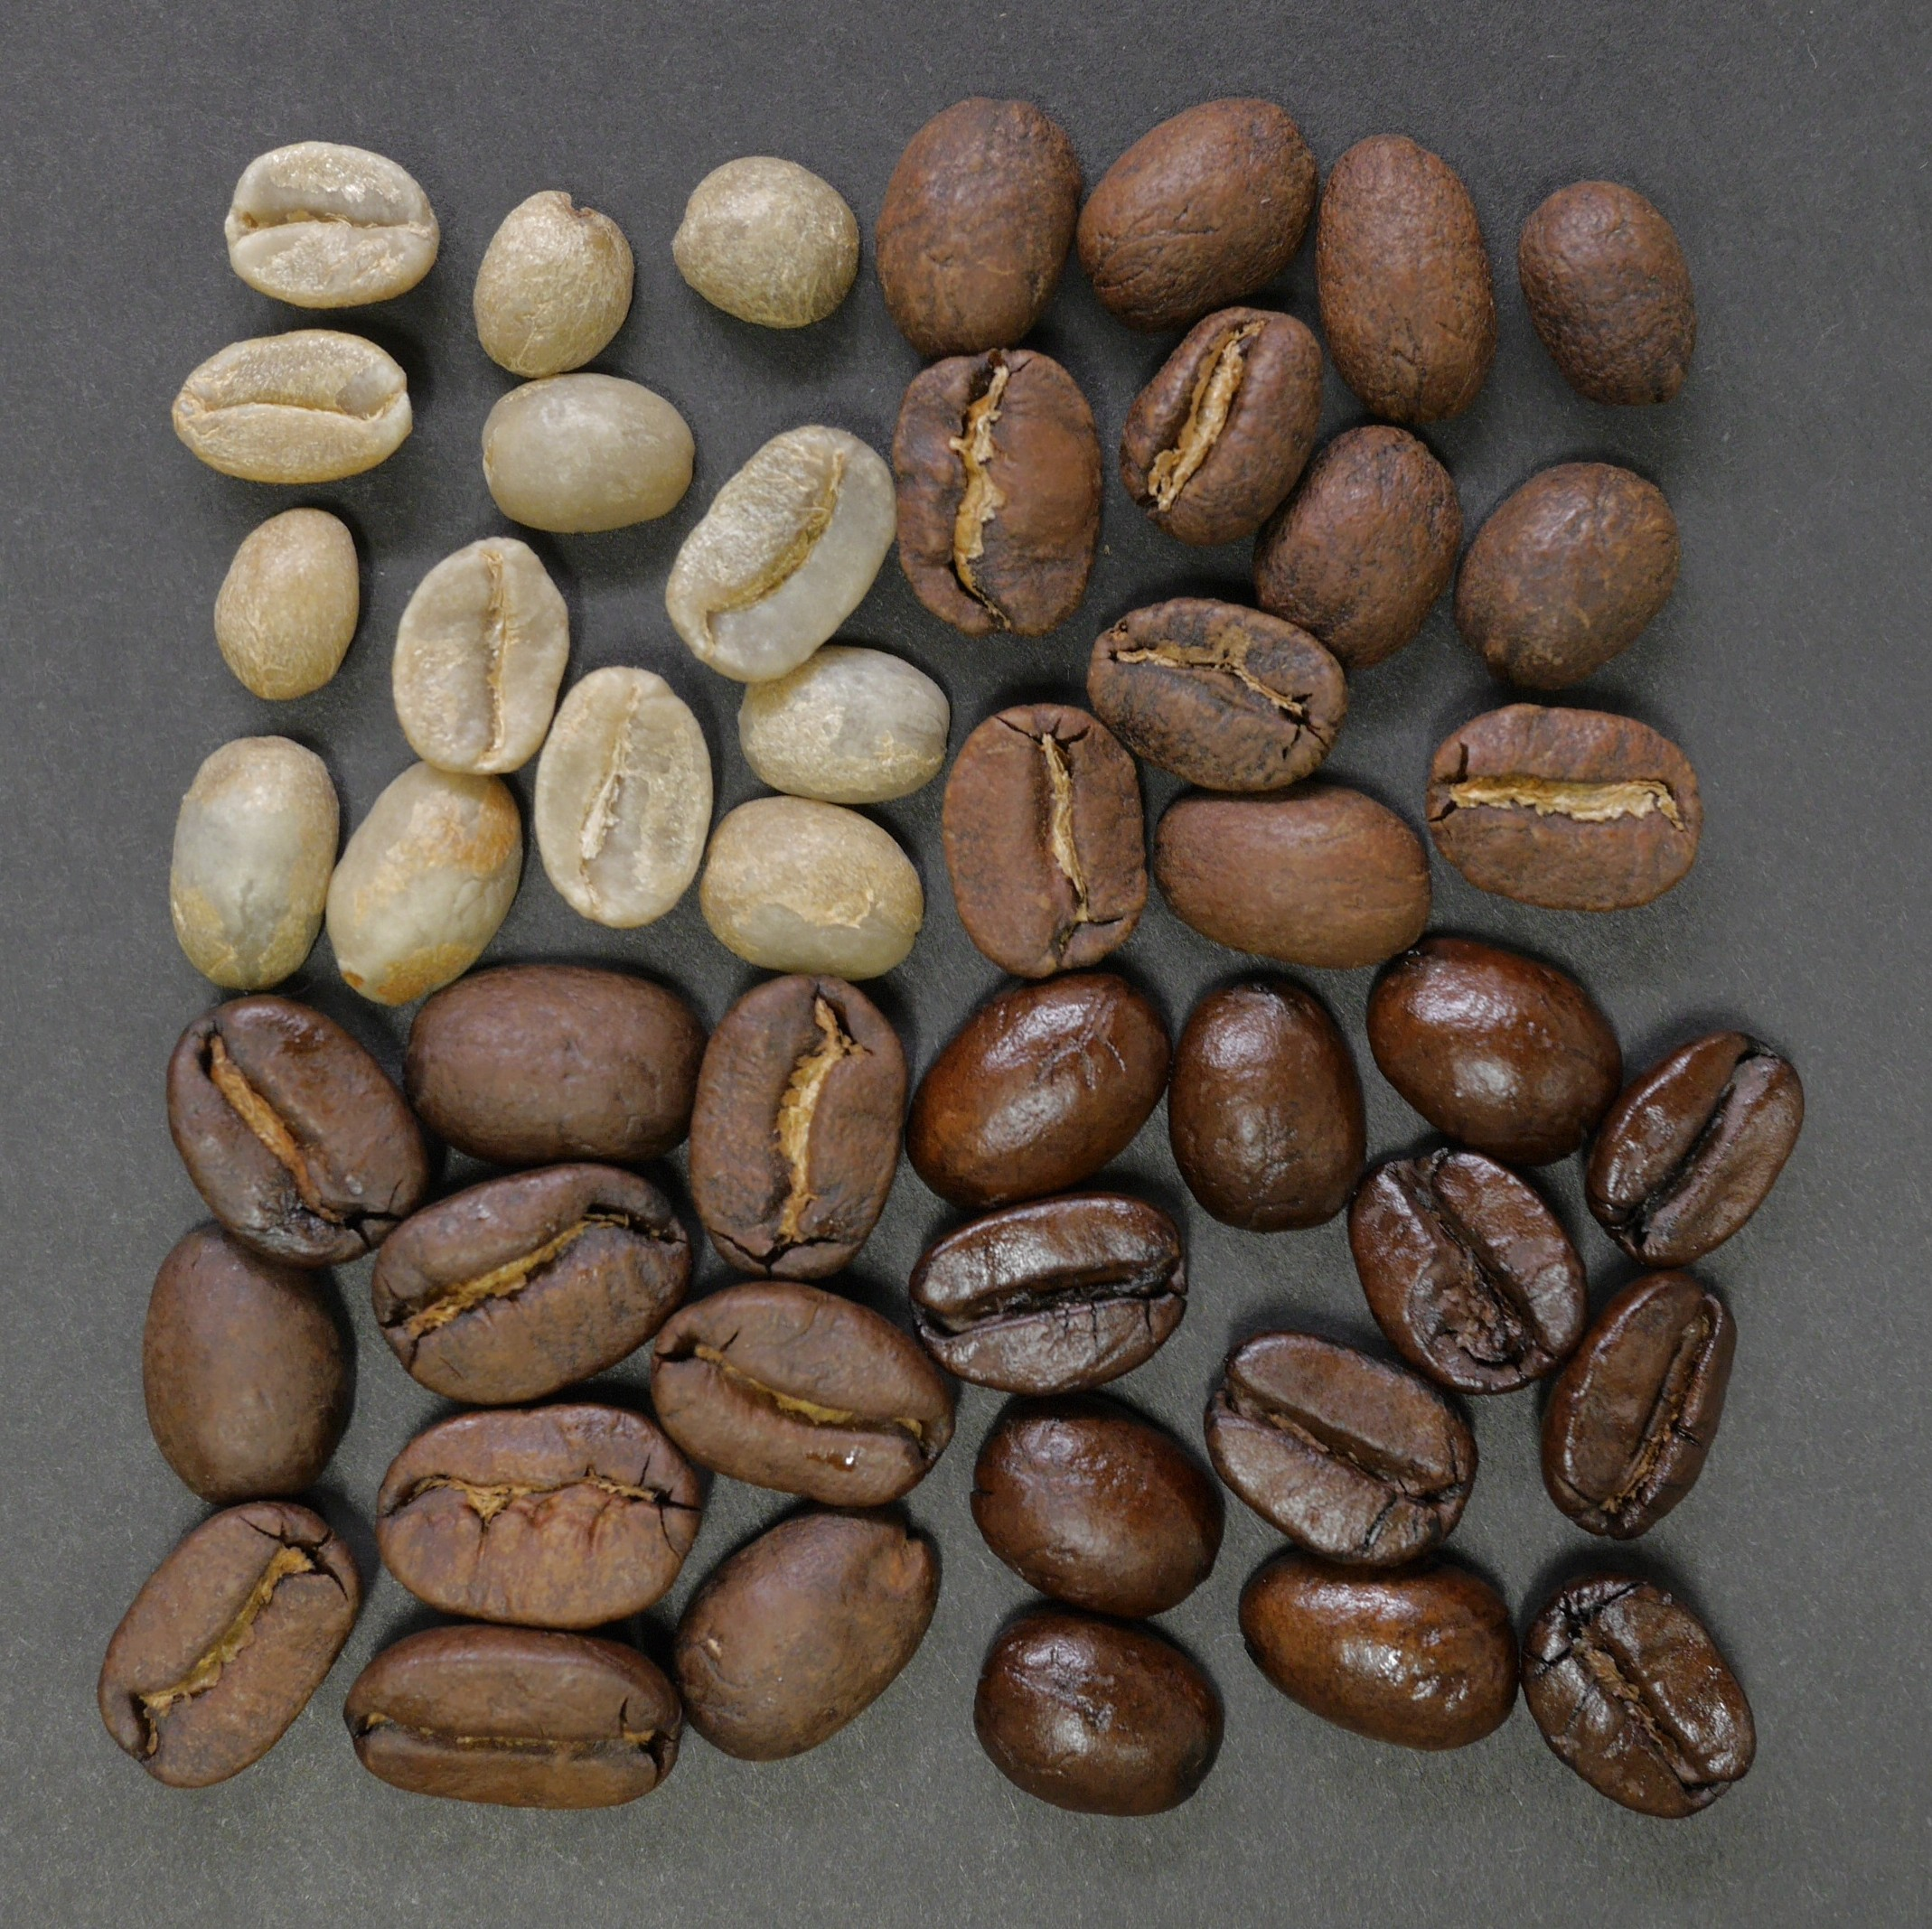 Four Coffeebeans